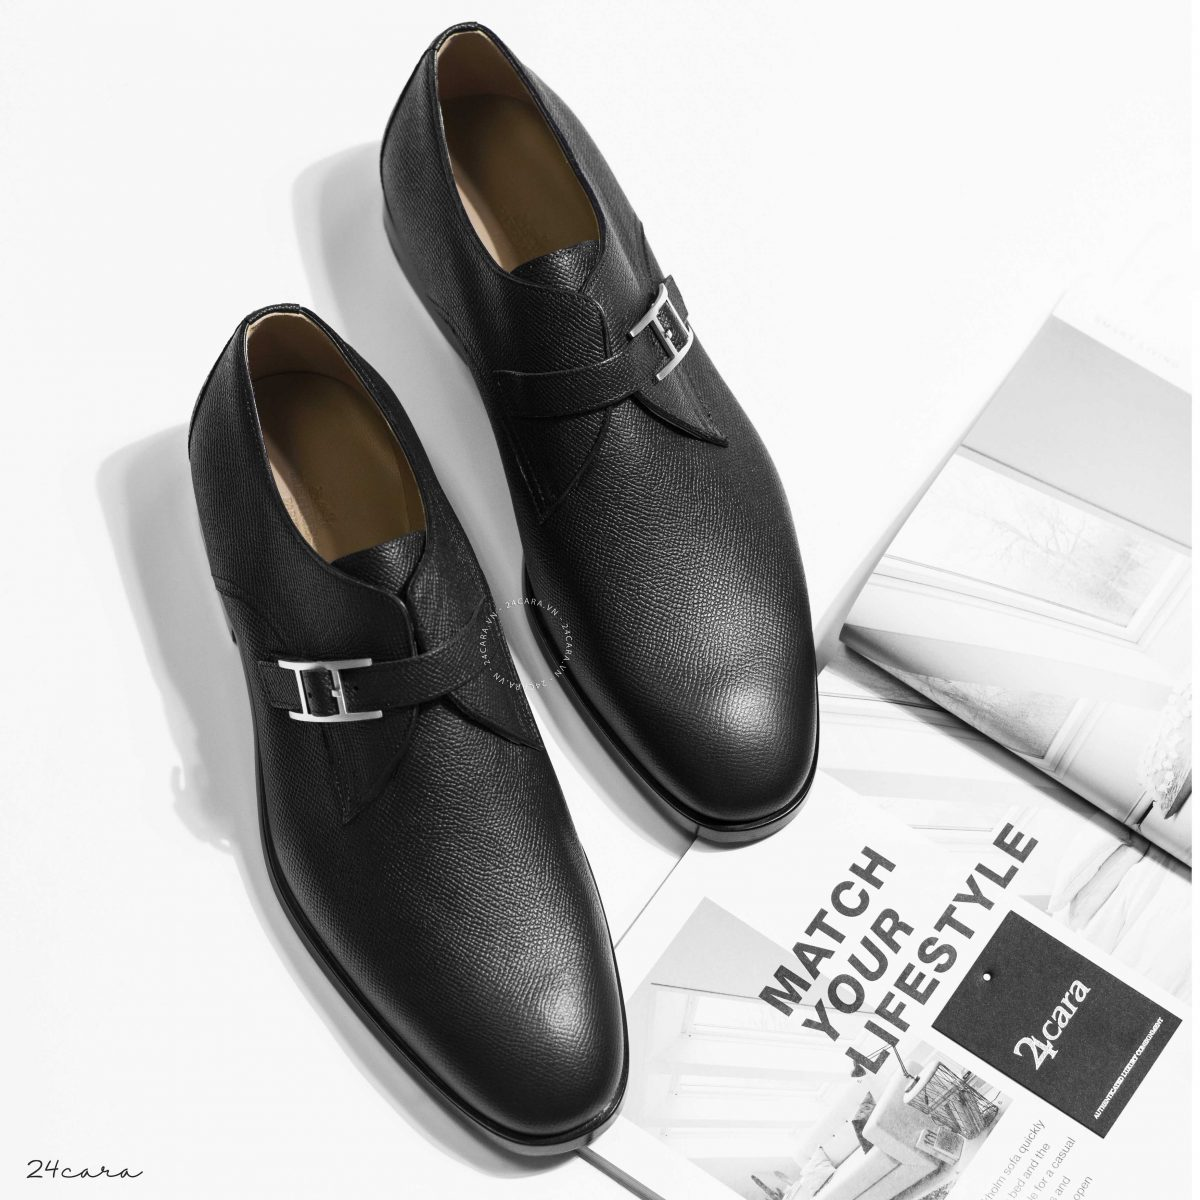 HERMES NORRIS DERBY CALFSKIN LEATHER SHOES